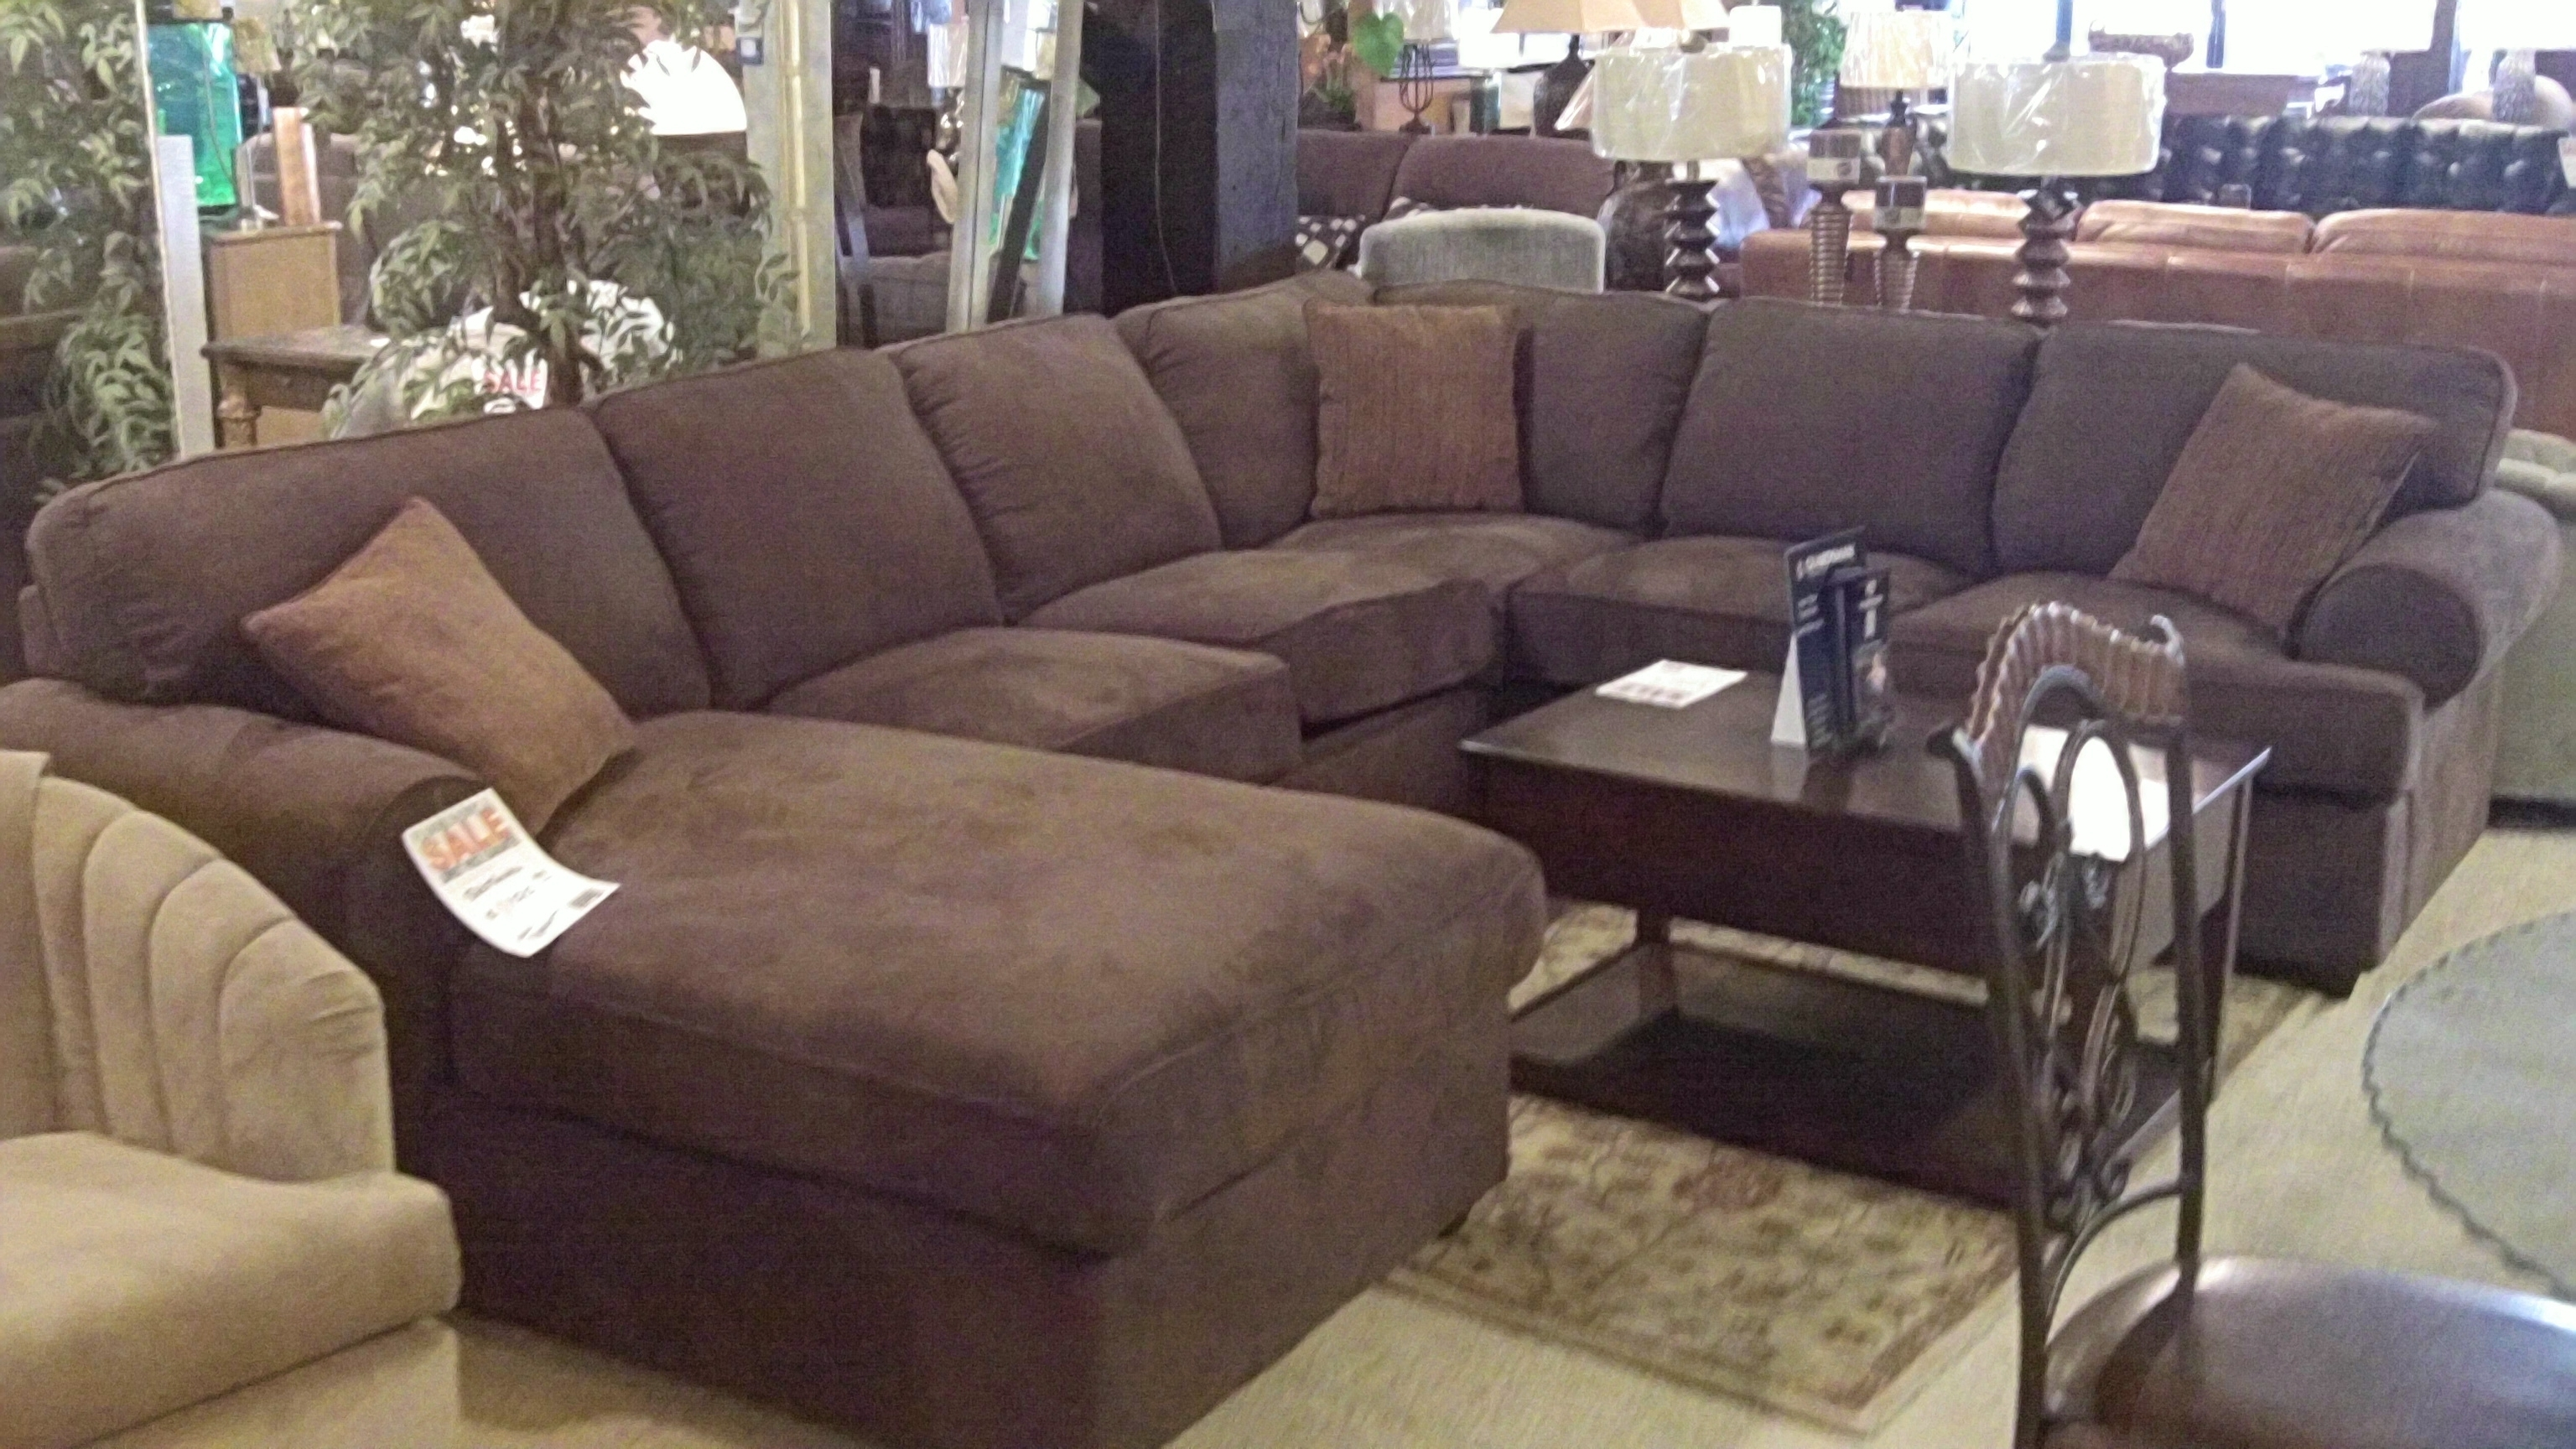 Elegant Sectional With Oversized Ottoman - Mediasupload pertaining to Sectional Sofas With Oversized Ottoman (Image 4 of 15)